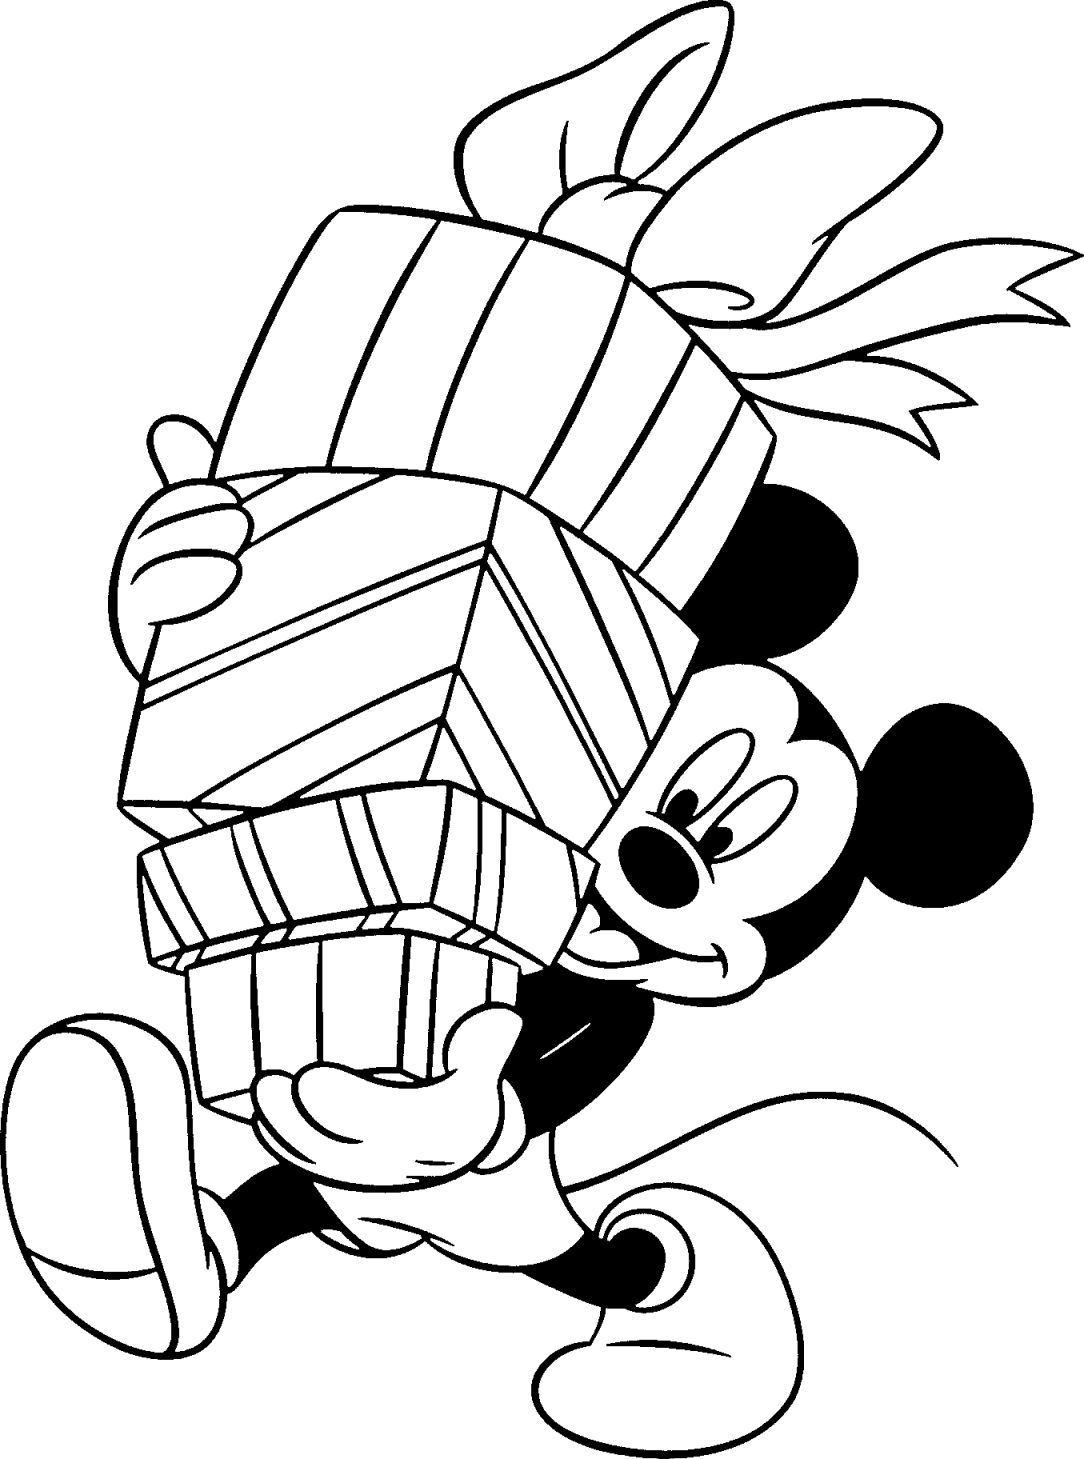 Mickey Mouse and Friends Christmas Coloring Pages